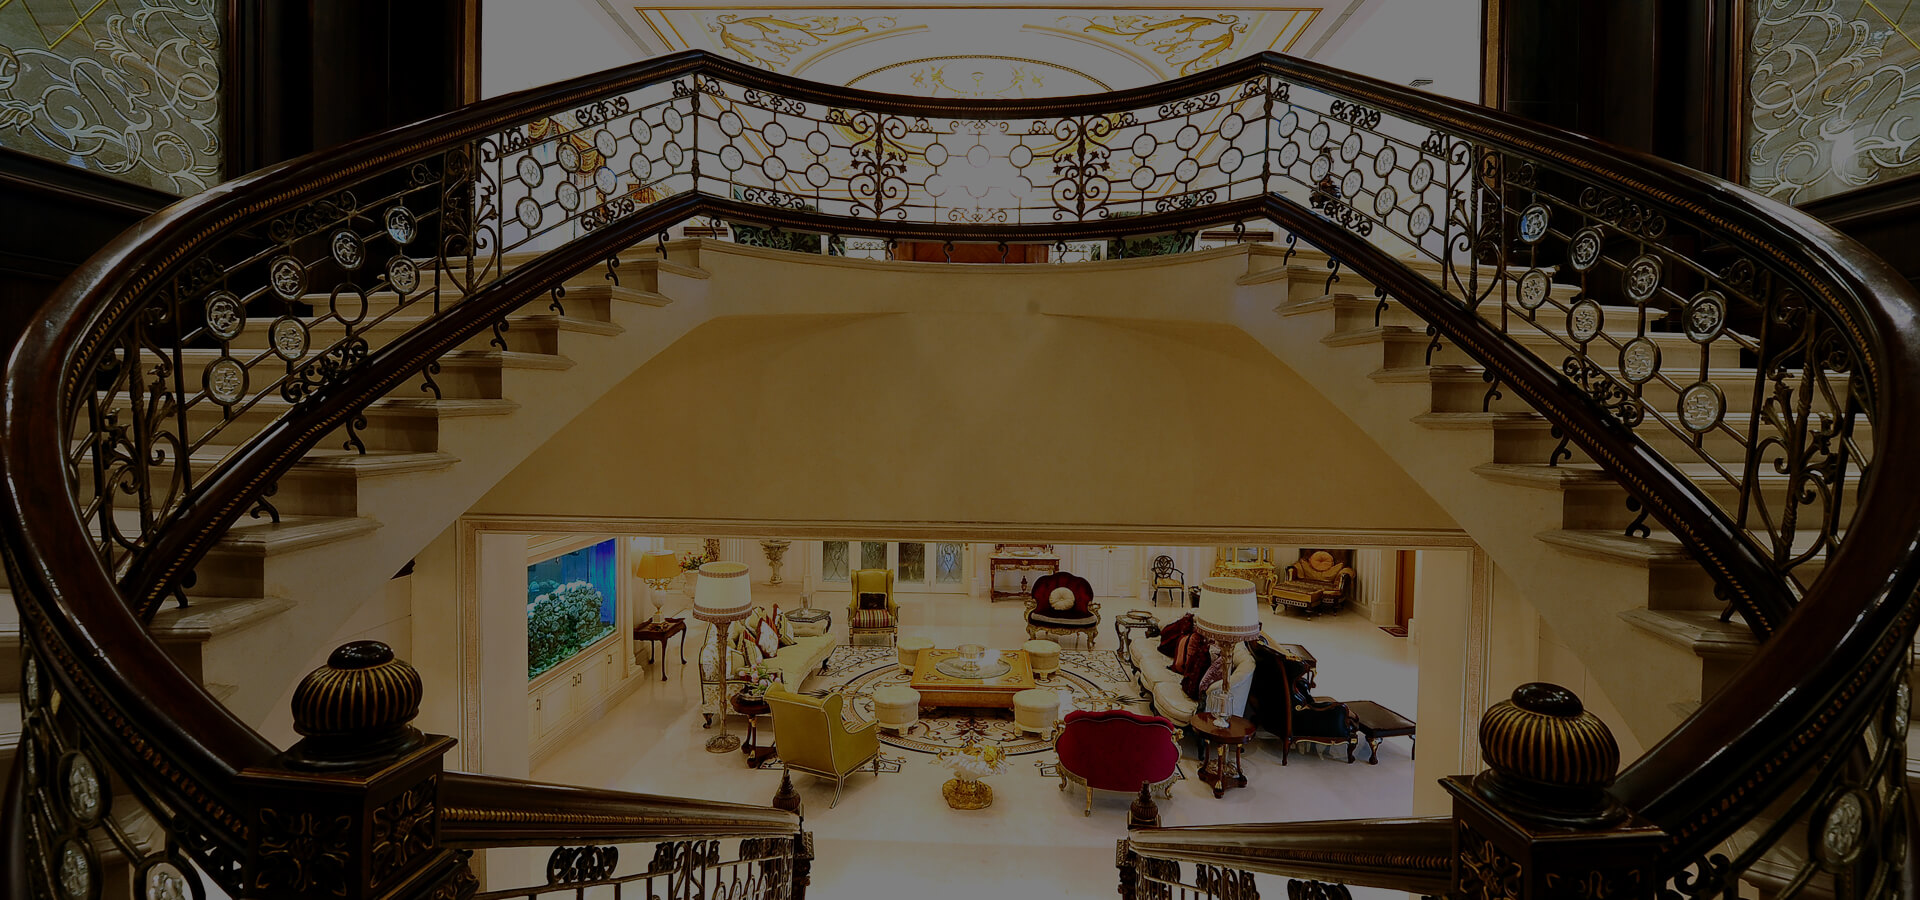 Best architecture and interior design firm in india fhdgroup for Best architecture firms in india